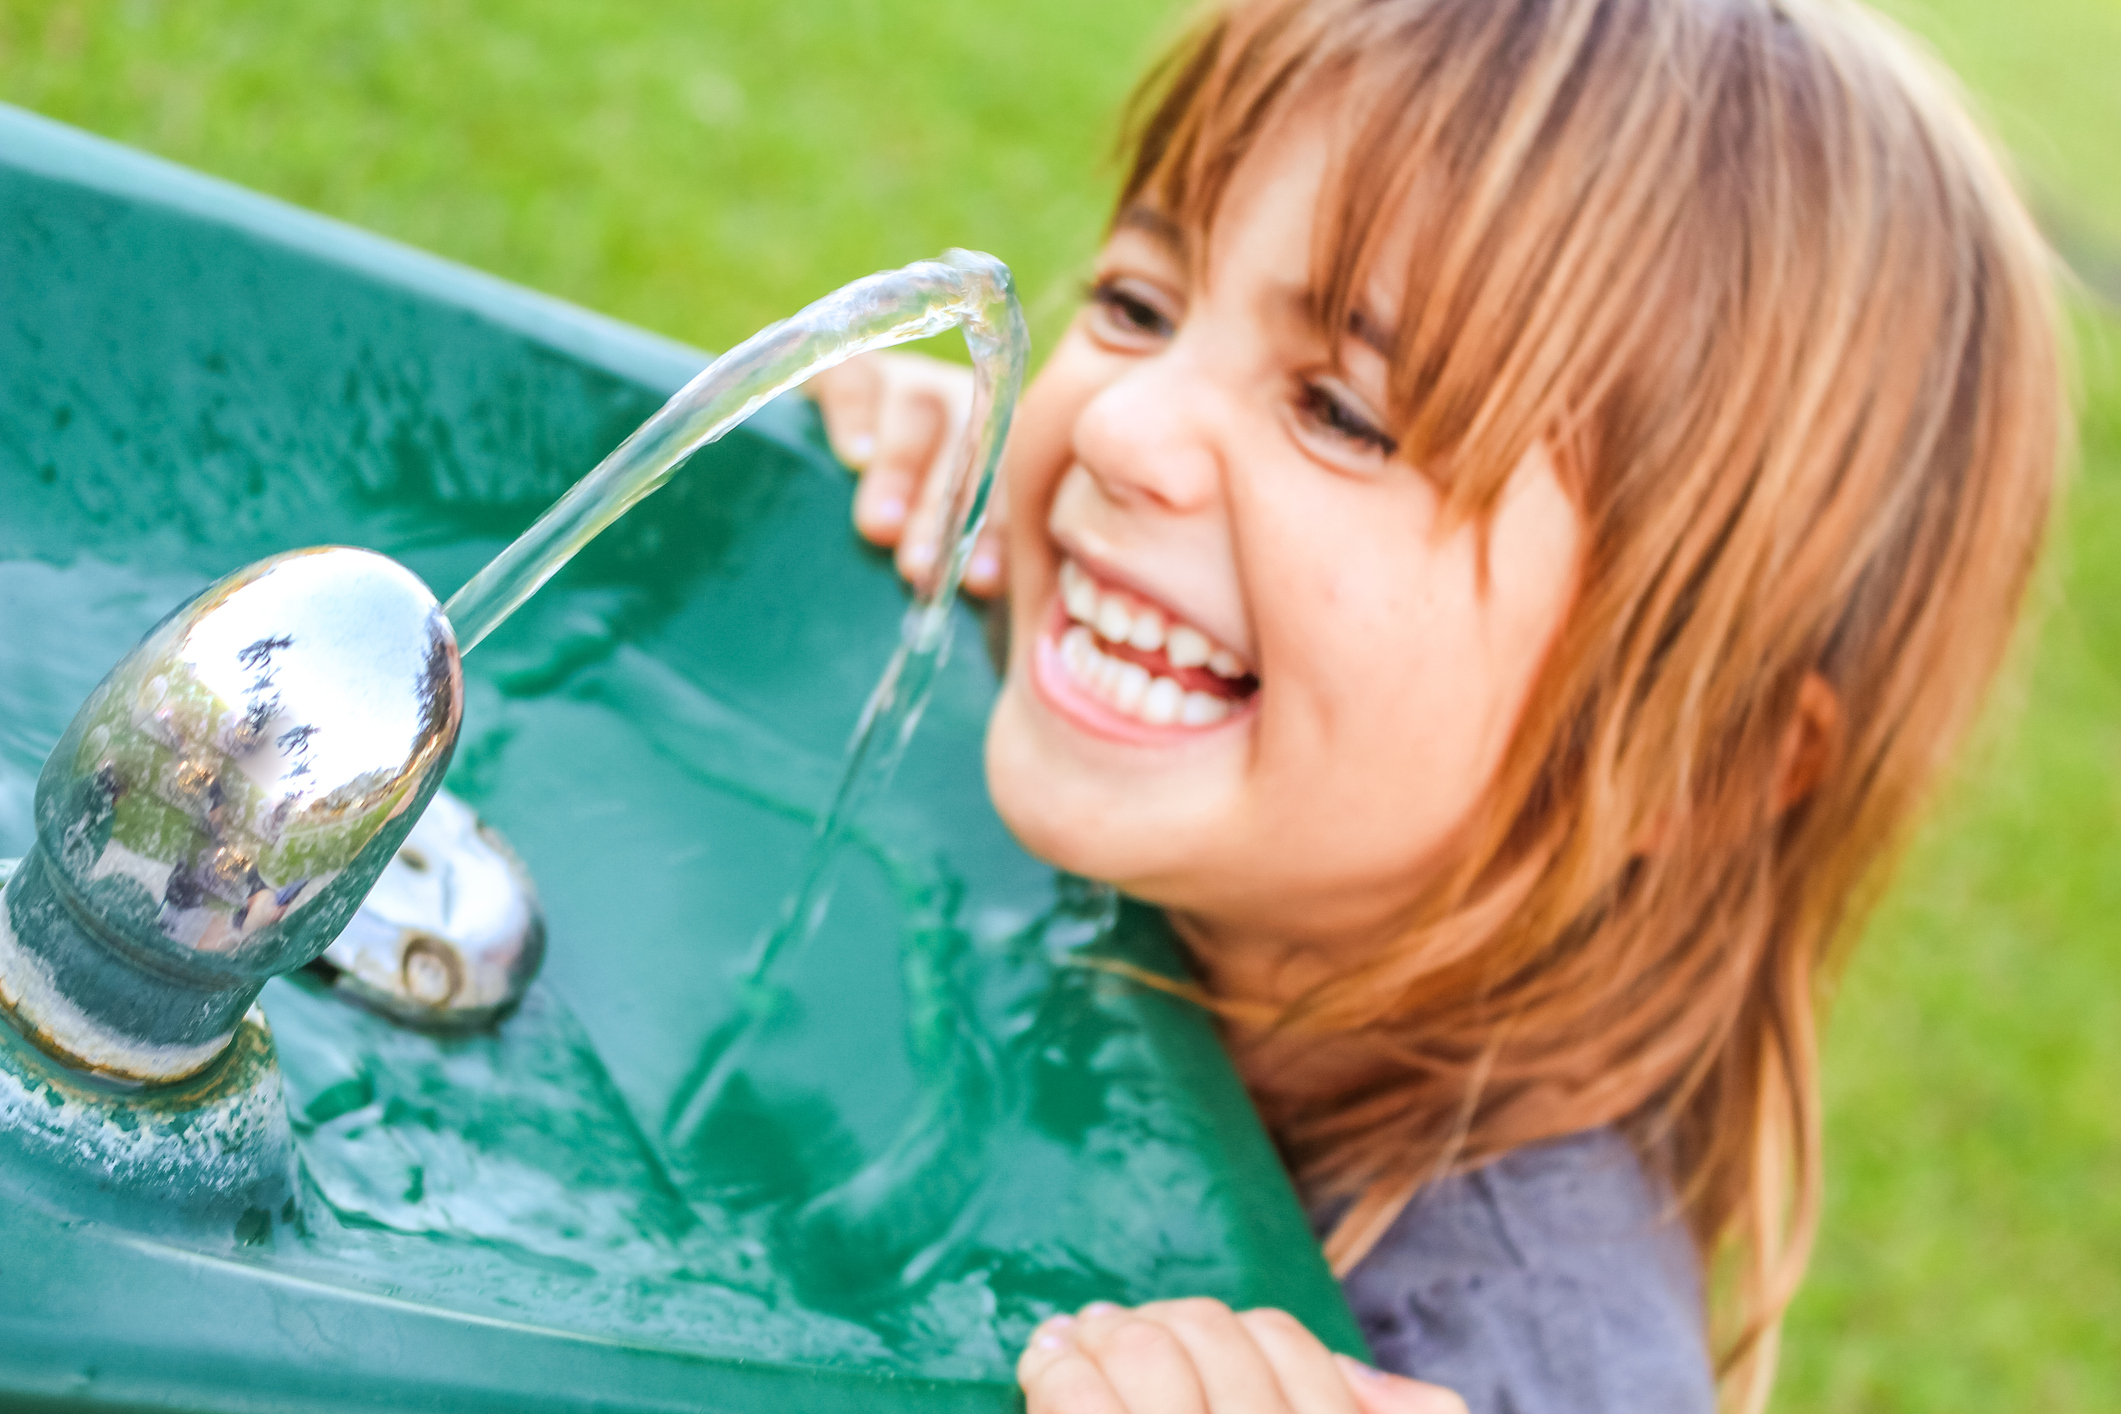 young girl using public drinking fountain